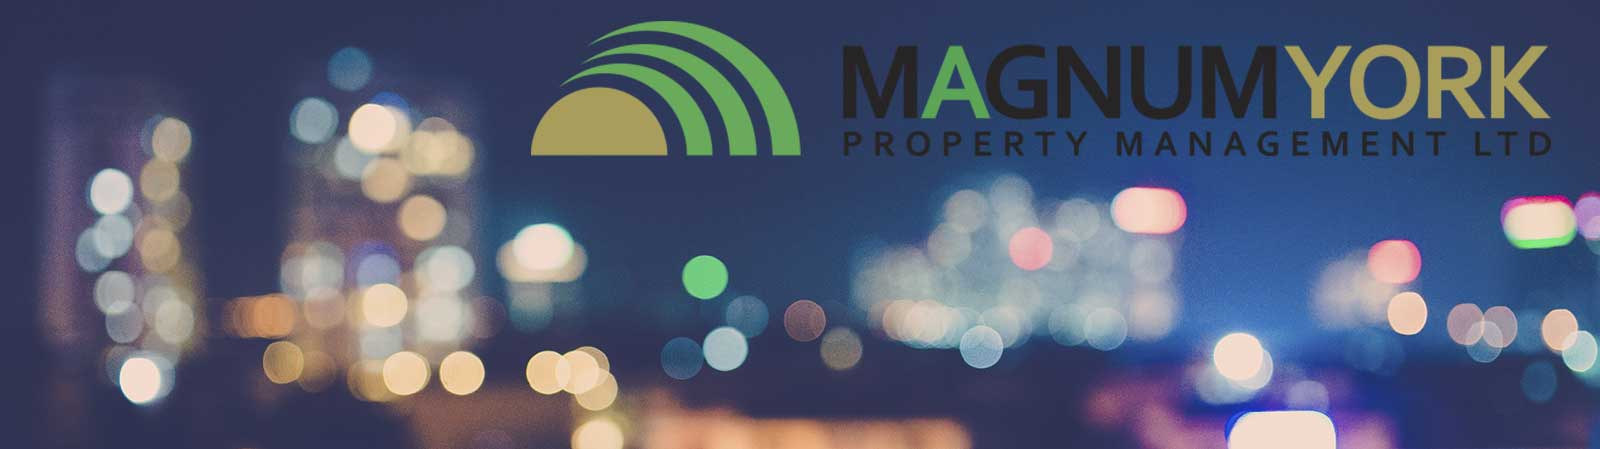 Magnum York Management Condo Terms you need to know lights buildings